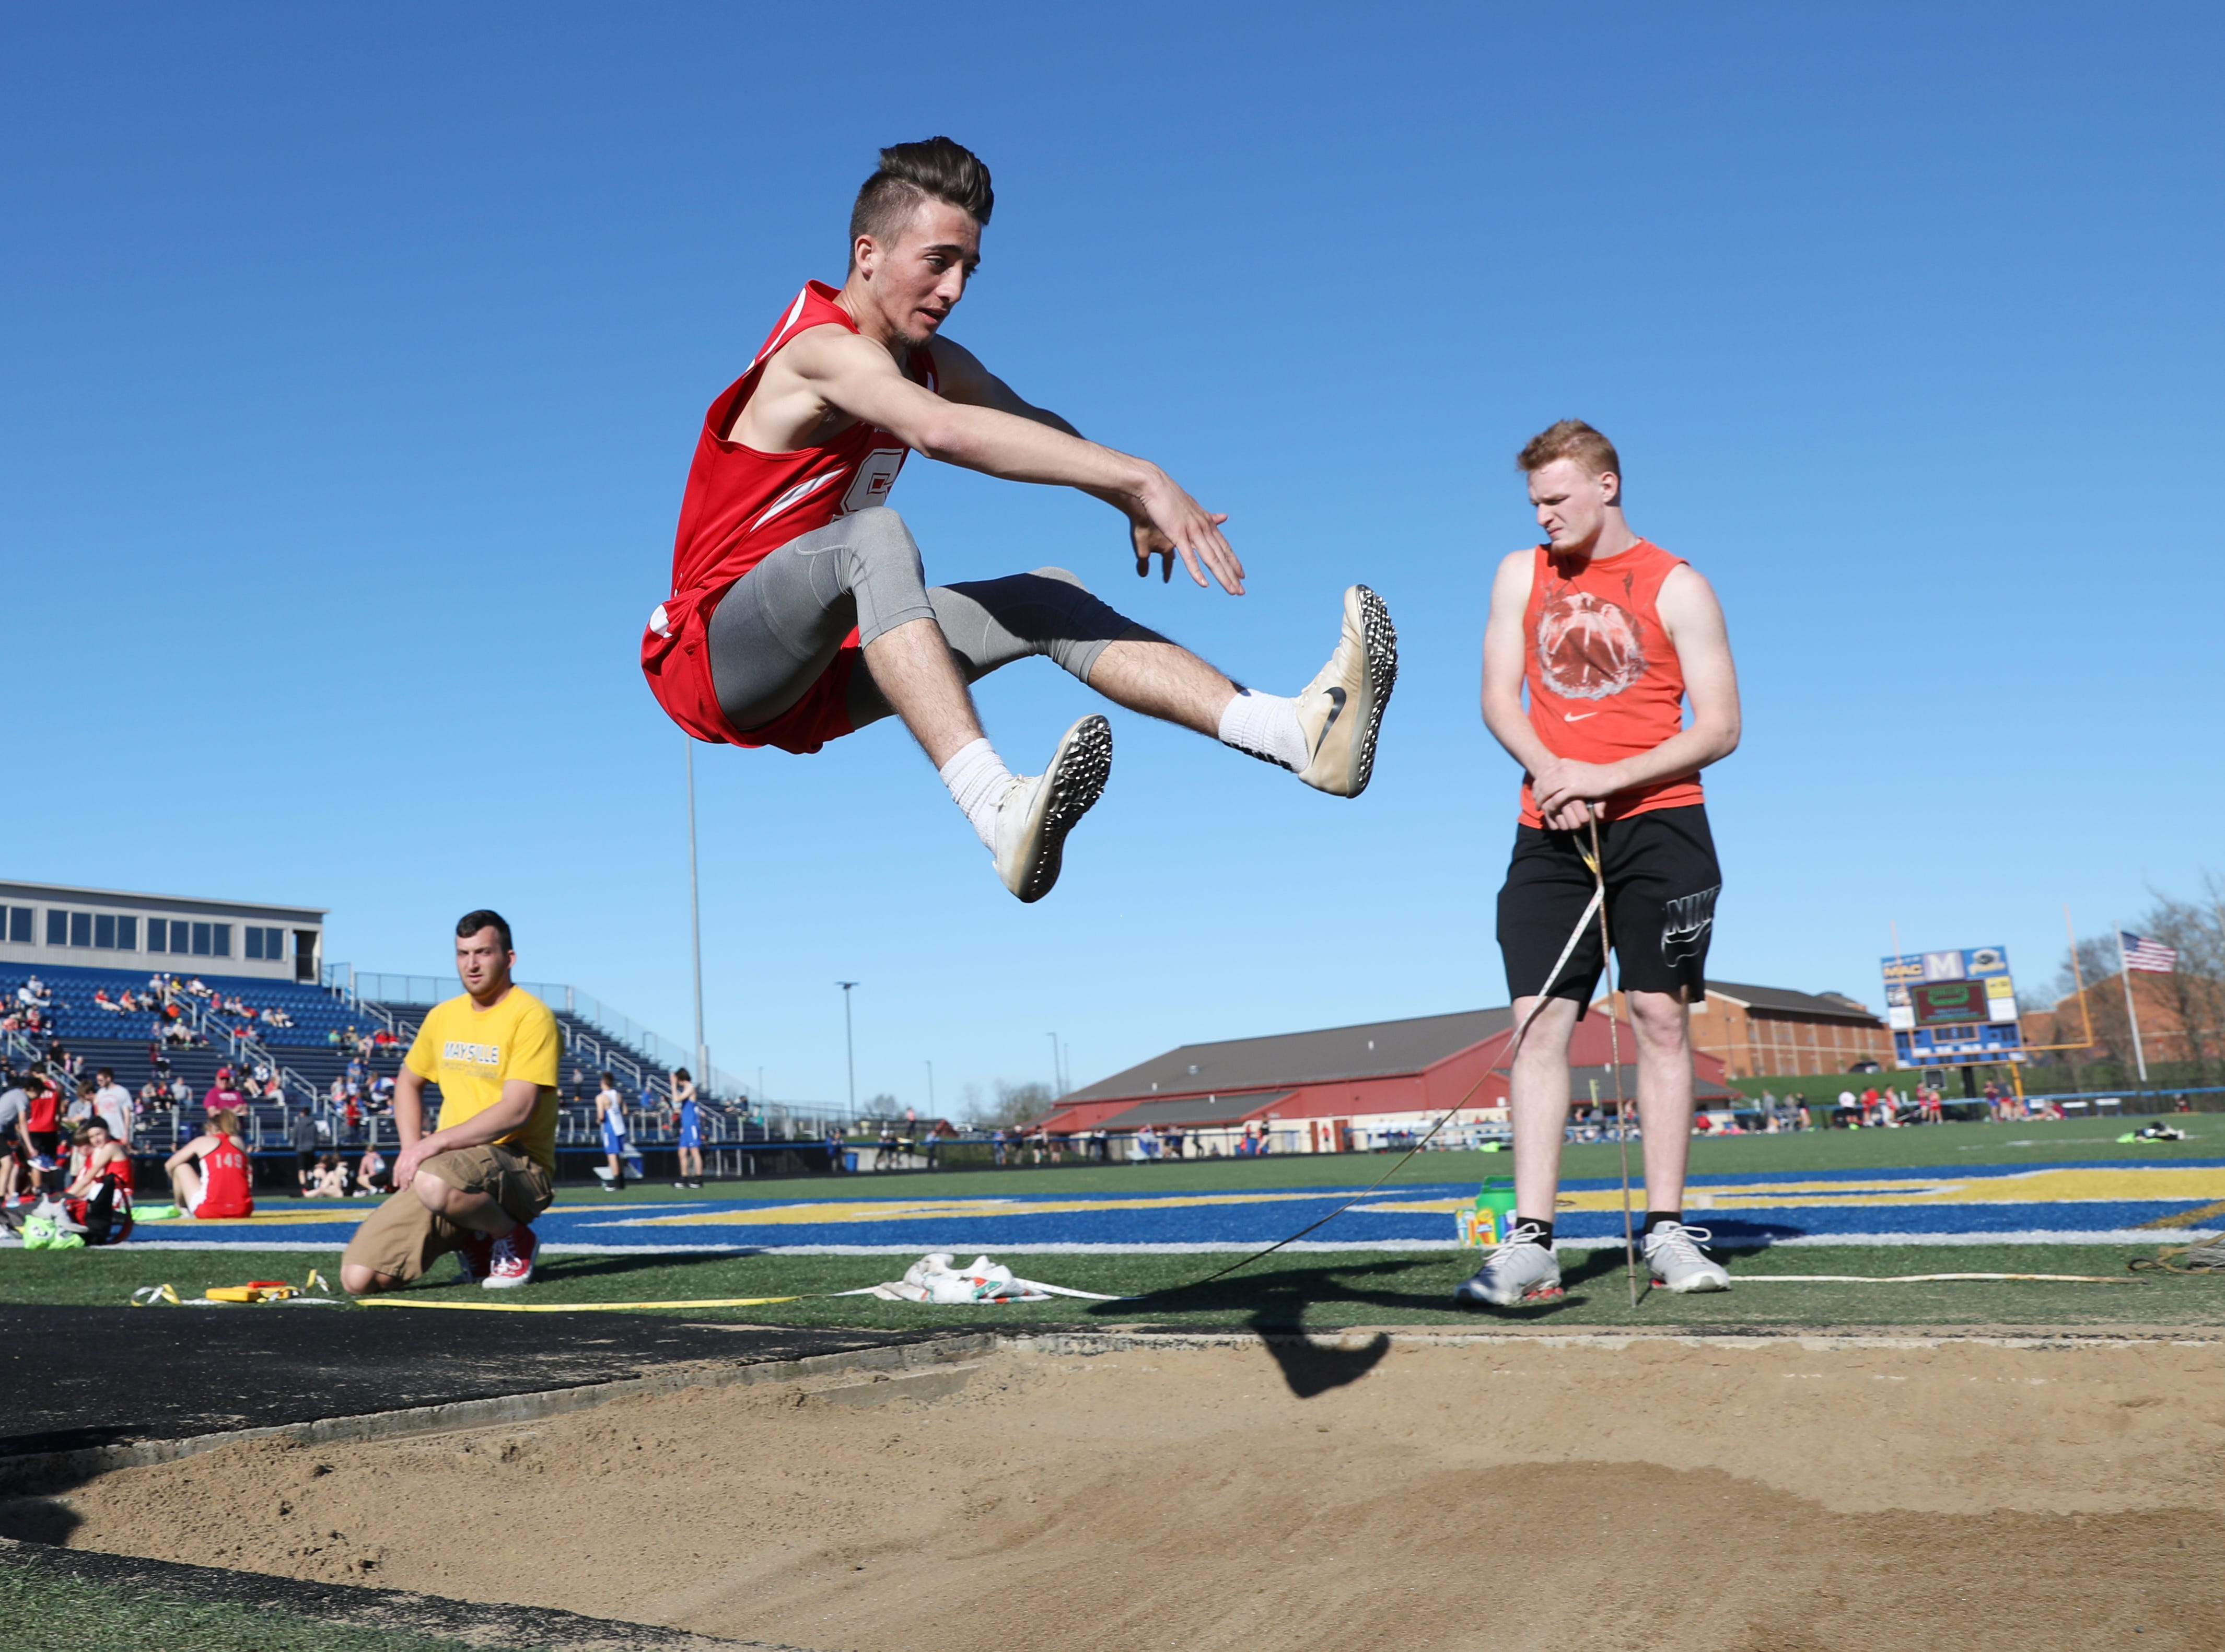 Sheridan's Tayden Sabo competes in the long jump during Tuesday's tri-meet between Sheridan, New Lexington and host Maysville.